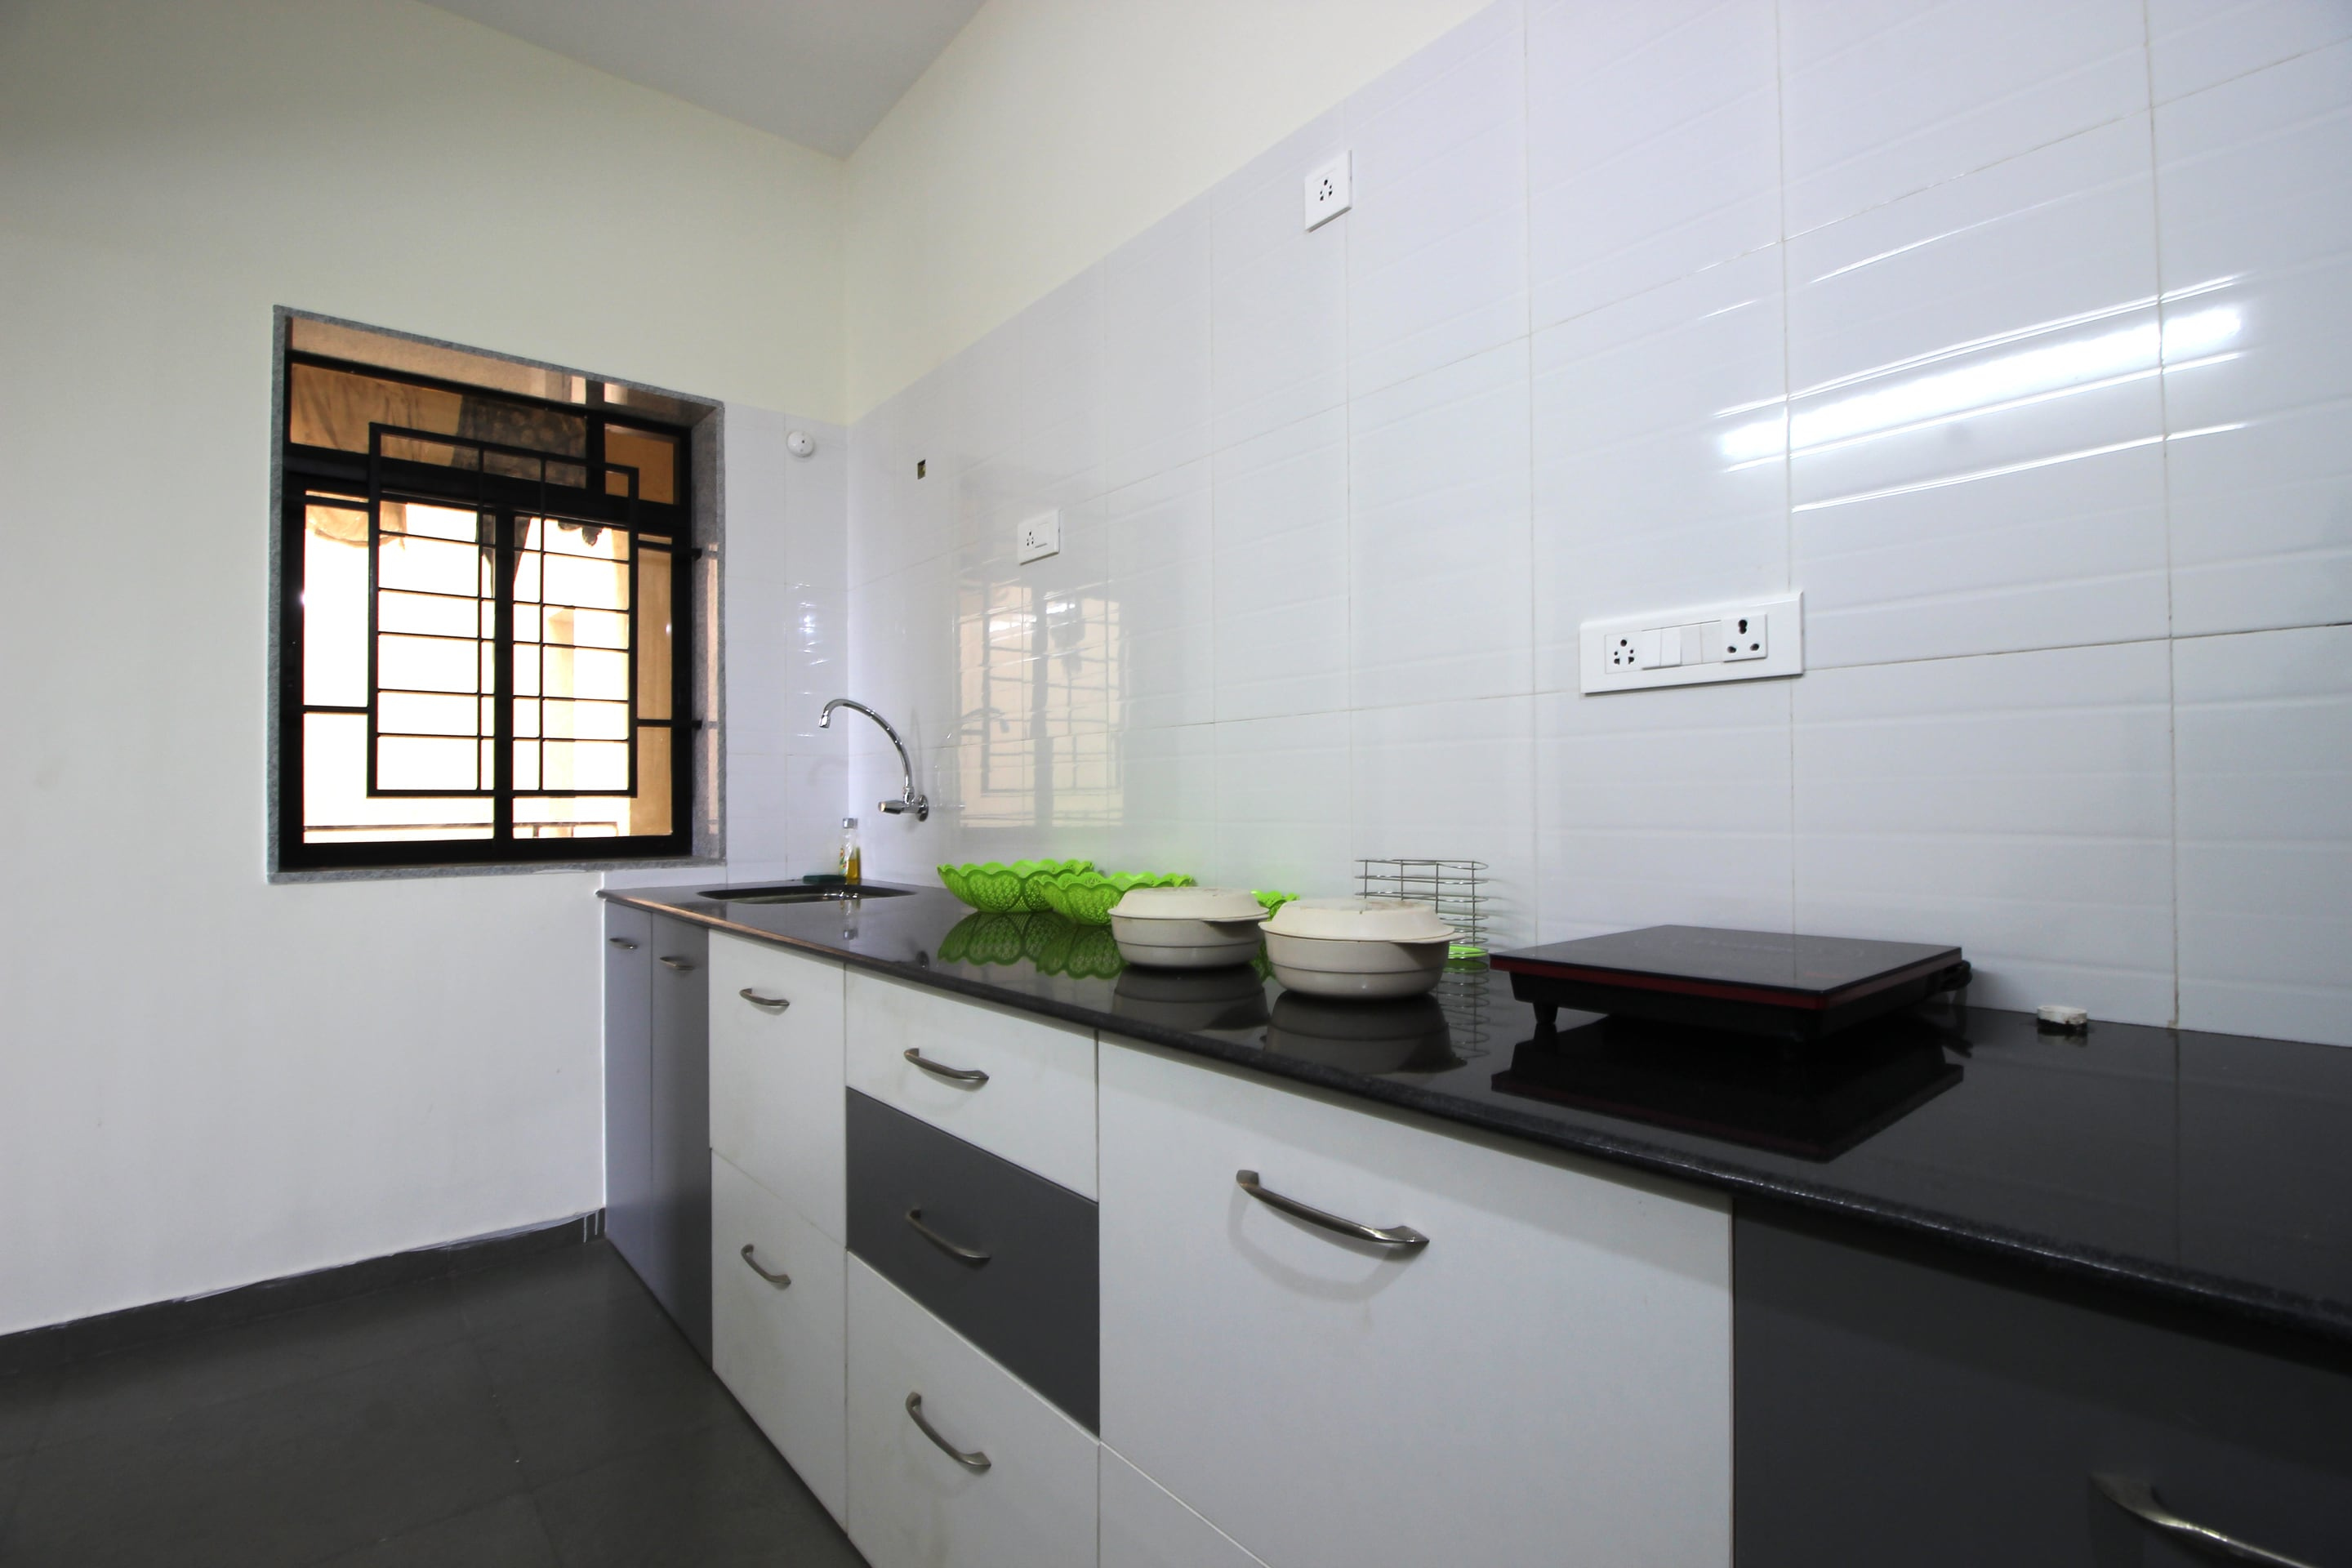 OYO 11430 Home Green View 2BHK Old Goa, Goa - FareHawker